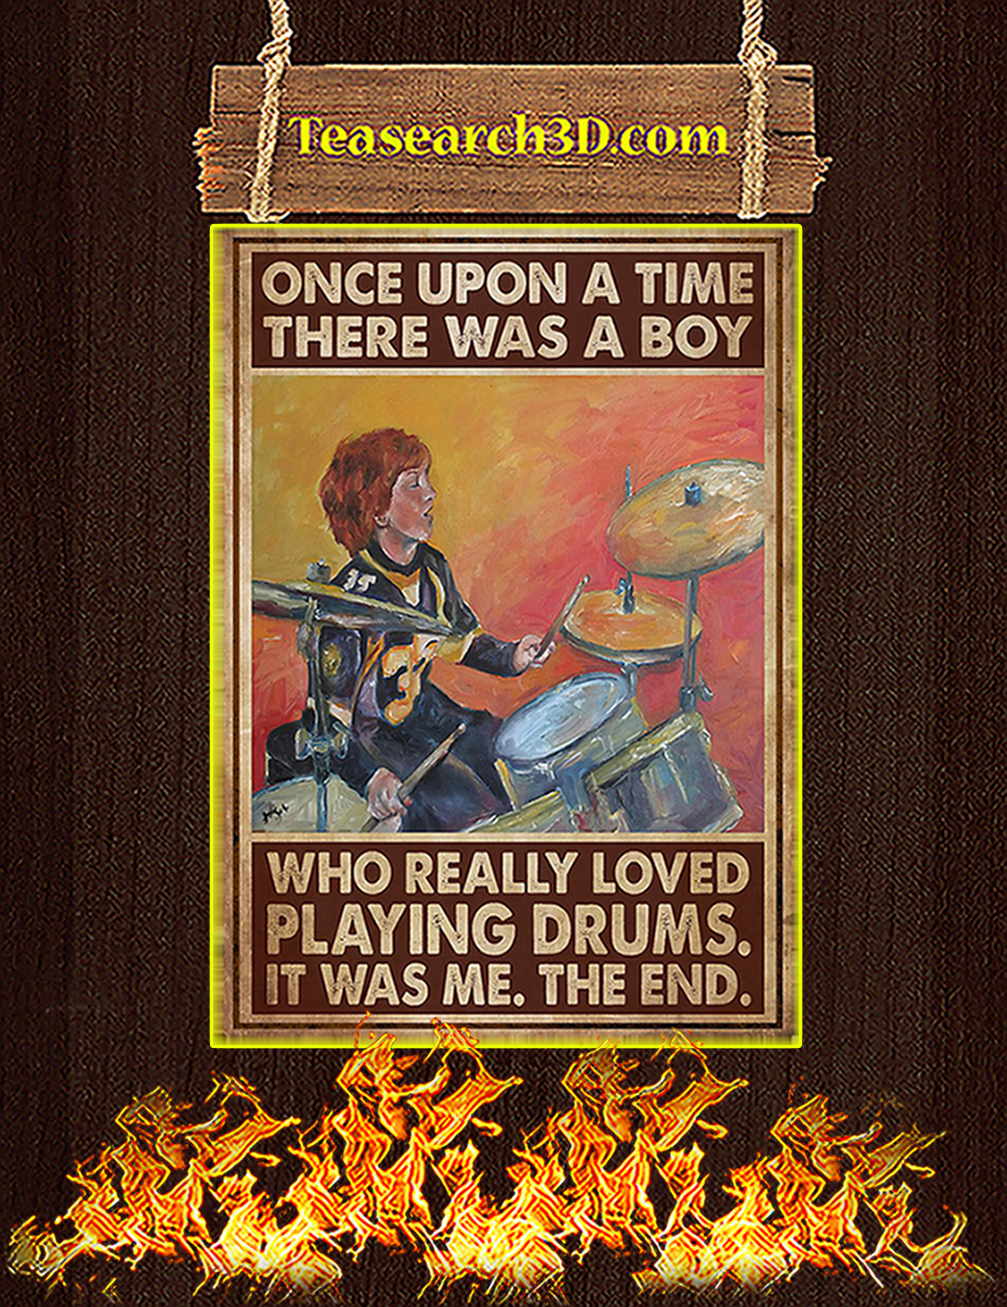 Once upon a time there was a boy who really loved playing drums poster